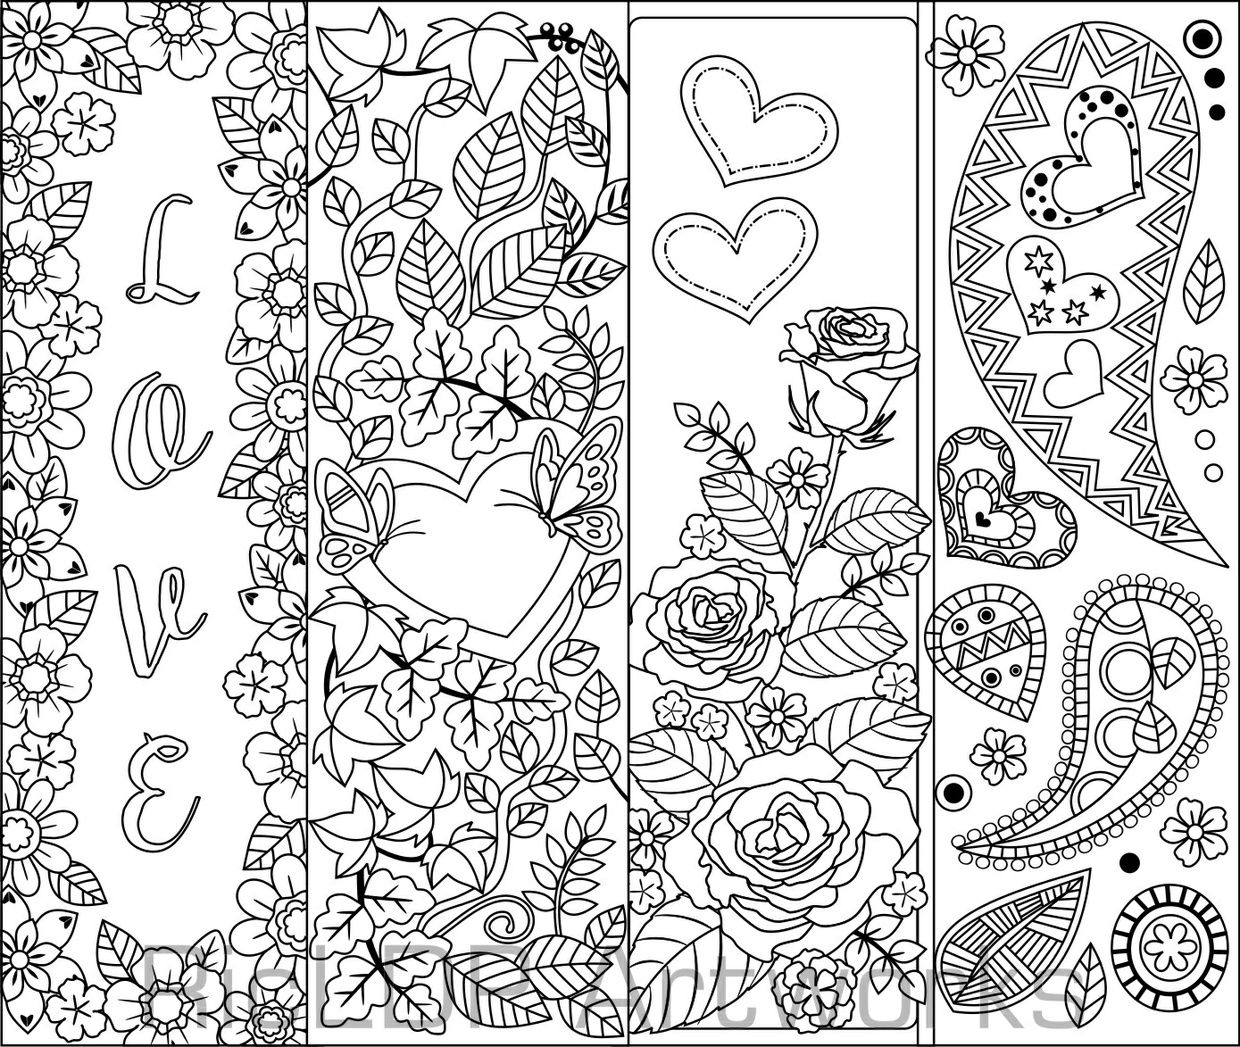 set of 8 coloring bookmarks  hearts; art doodles for